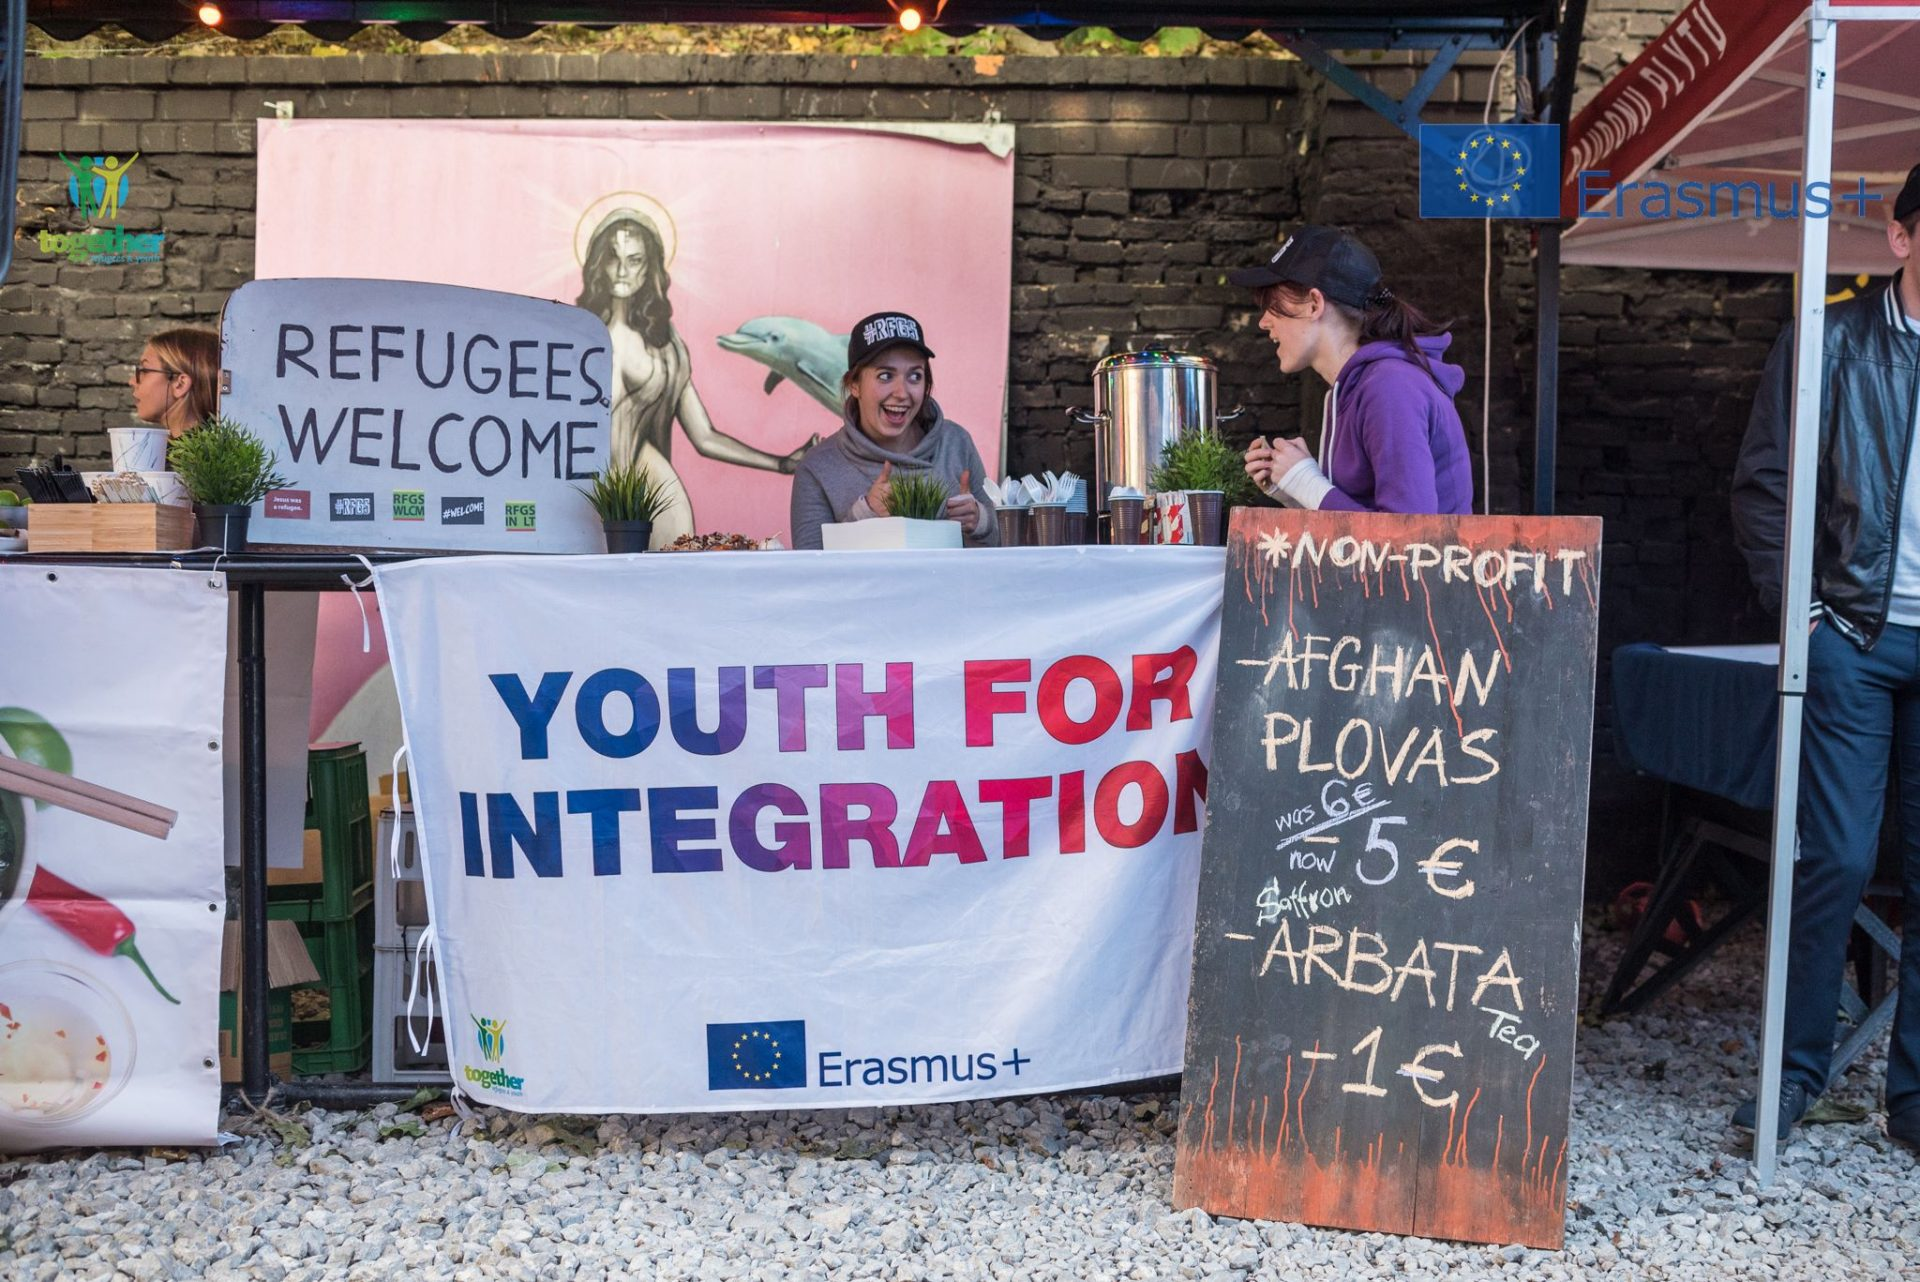 Youth helping the refugee community in the Baltics (Lithuania & Latvia)